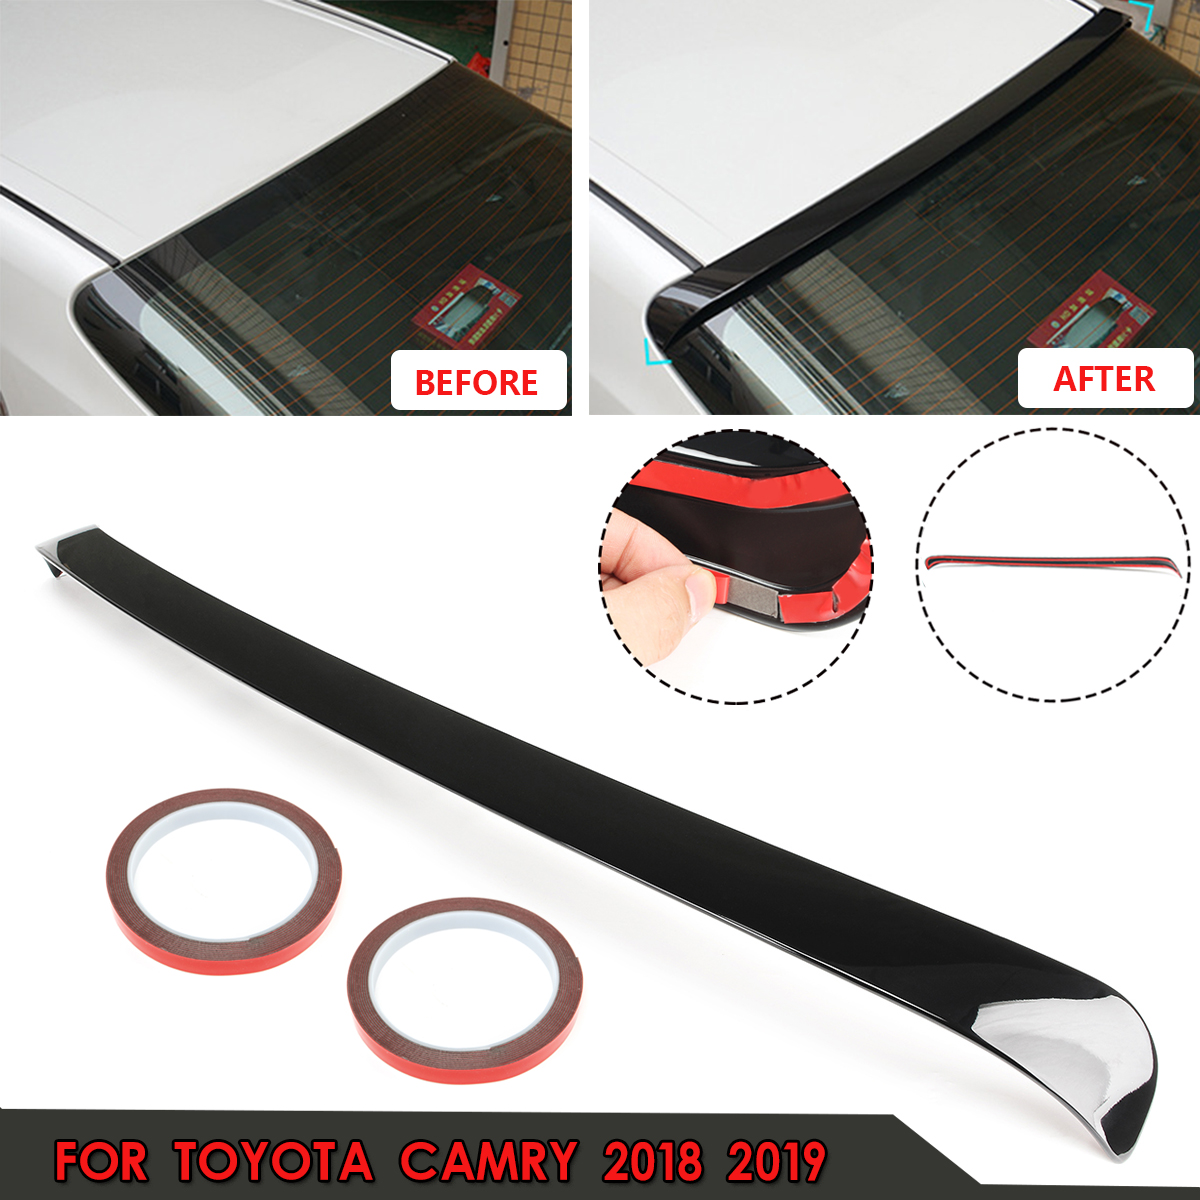 For Toyota Camry 2018 2019 Glossy Black ABS Plastic for JDM Sport Rear Window Roof Wing Spoiler w/ 3 meters glueFor Toyota Camry 2018 2019 Glossy Black ABS Plastic for JDM Sport Rear Window Roof Wing Spoiler w/ 3 meters glue